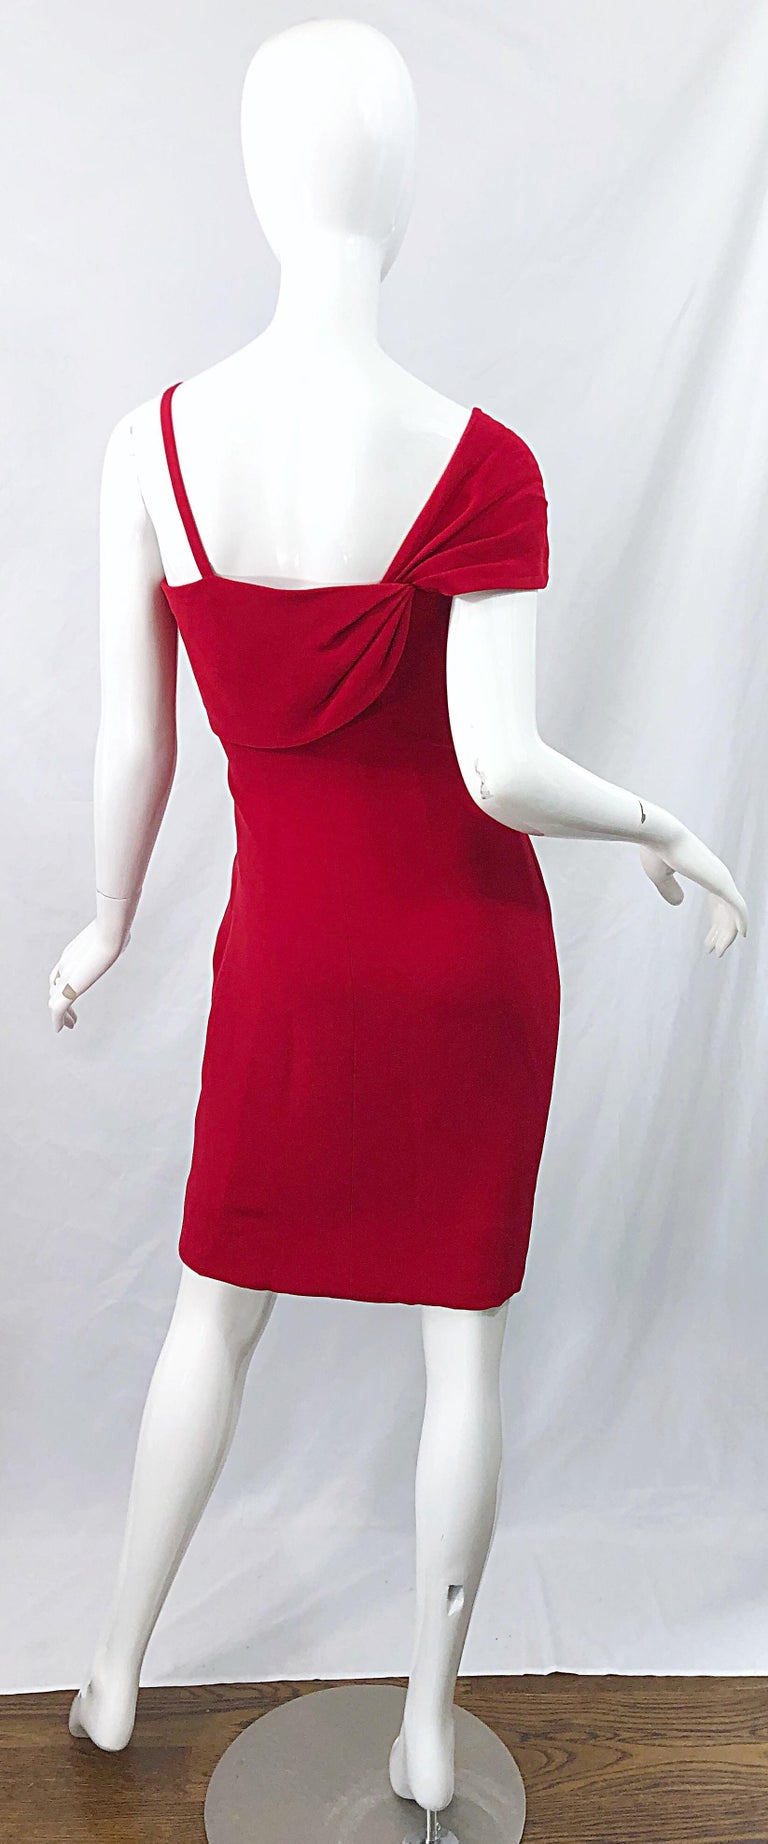 Vintage Bill Blass 1990s Size 6 Lipstick Red One Shoulder 90s Silk Dress In Excellent Condition For Sale In Chicago, IL